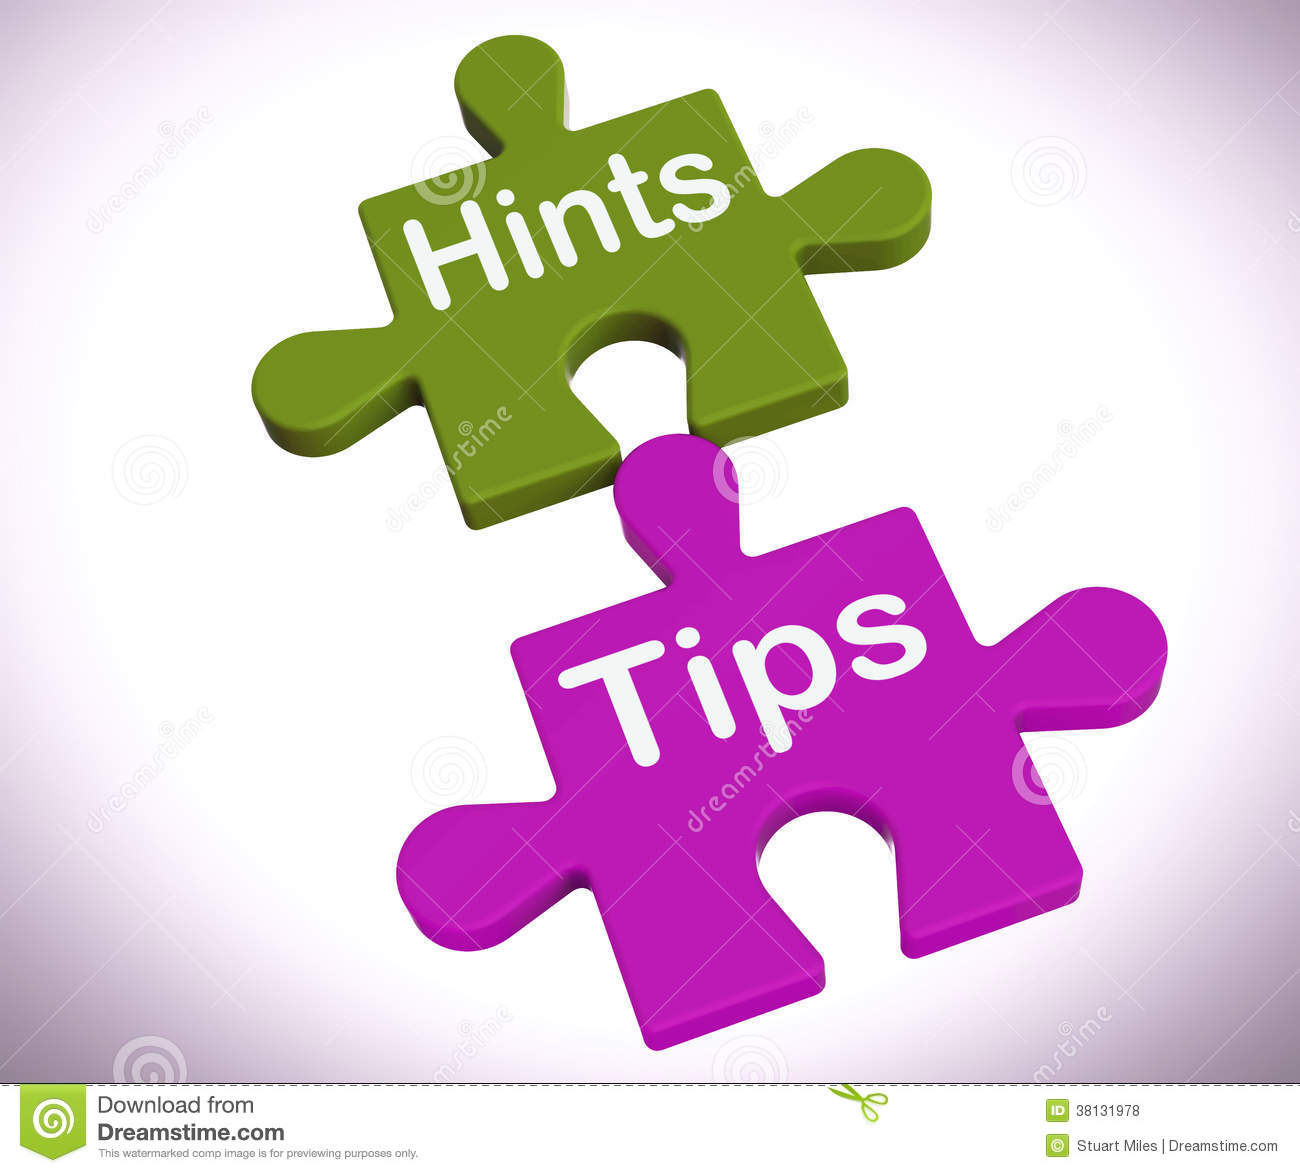 Online dating hints and tips